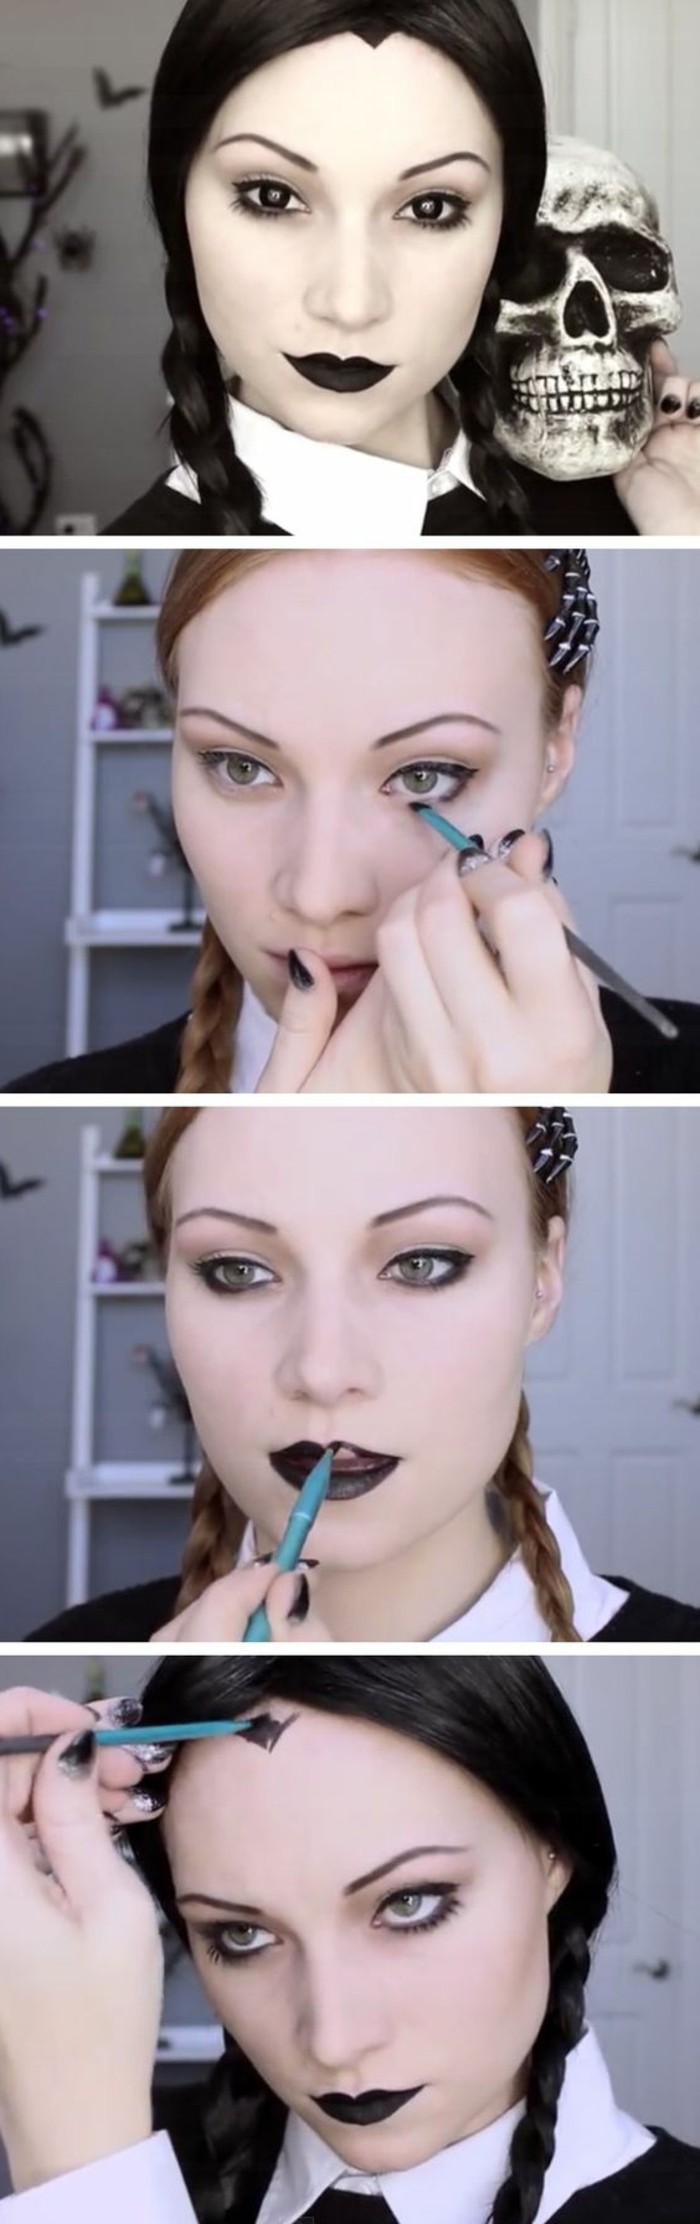 wednesday-addams-comment-faire-le-look-idee-diy-magnifique-maquillage-halloween